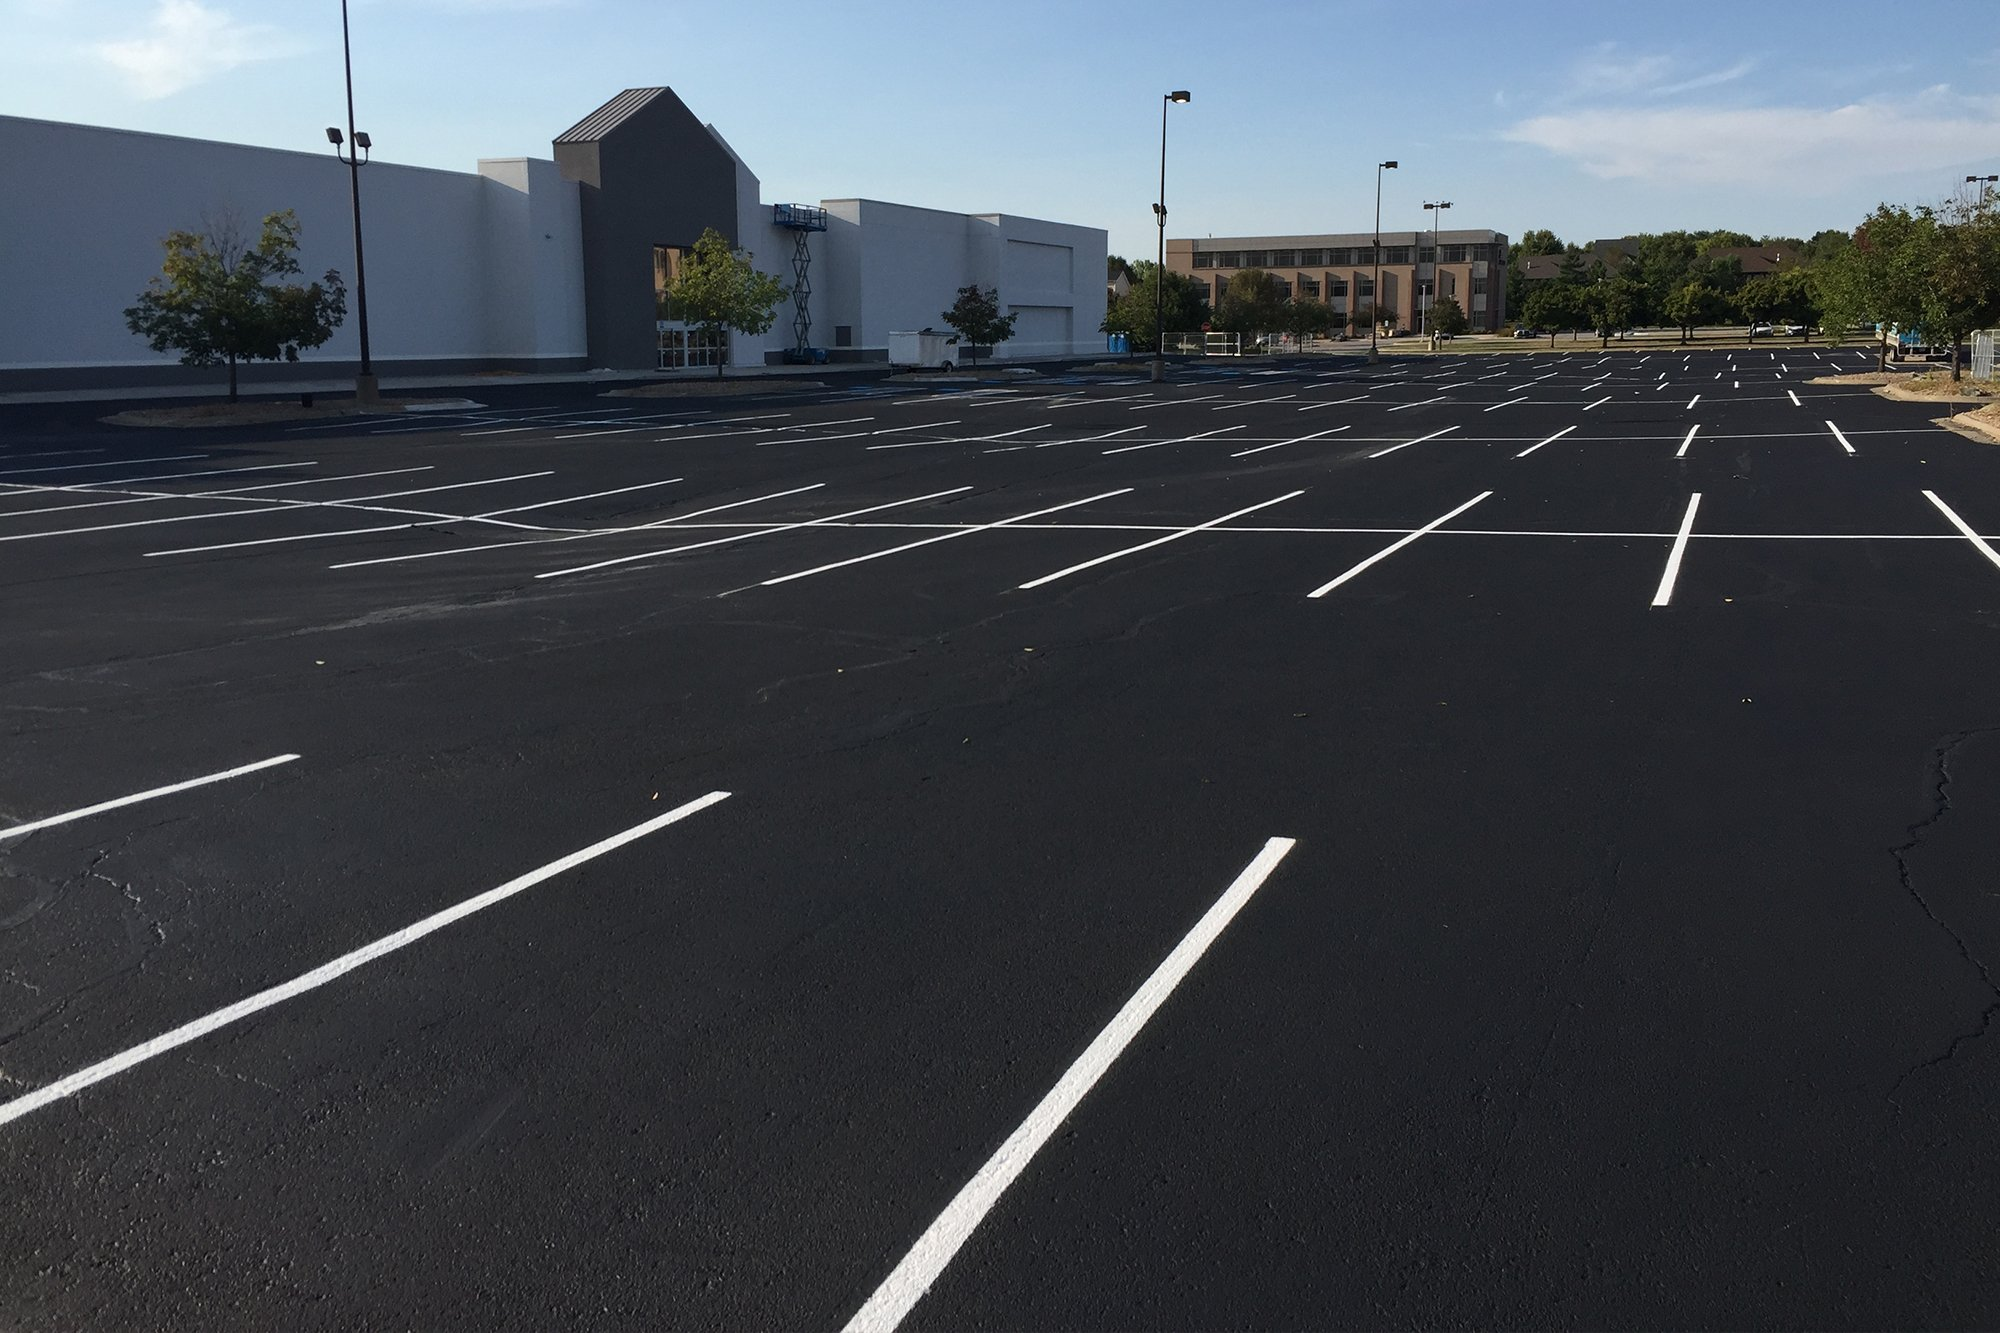 Lincoln Paving Asphalt Repair and Patching Lincoln Asphalt parking lot striping after2 - APMS Lincoln Paving Services